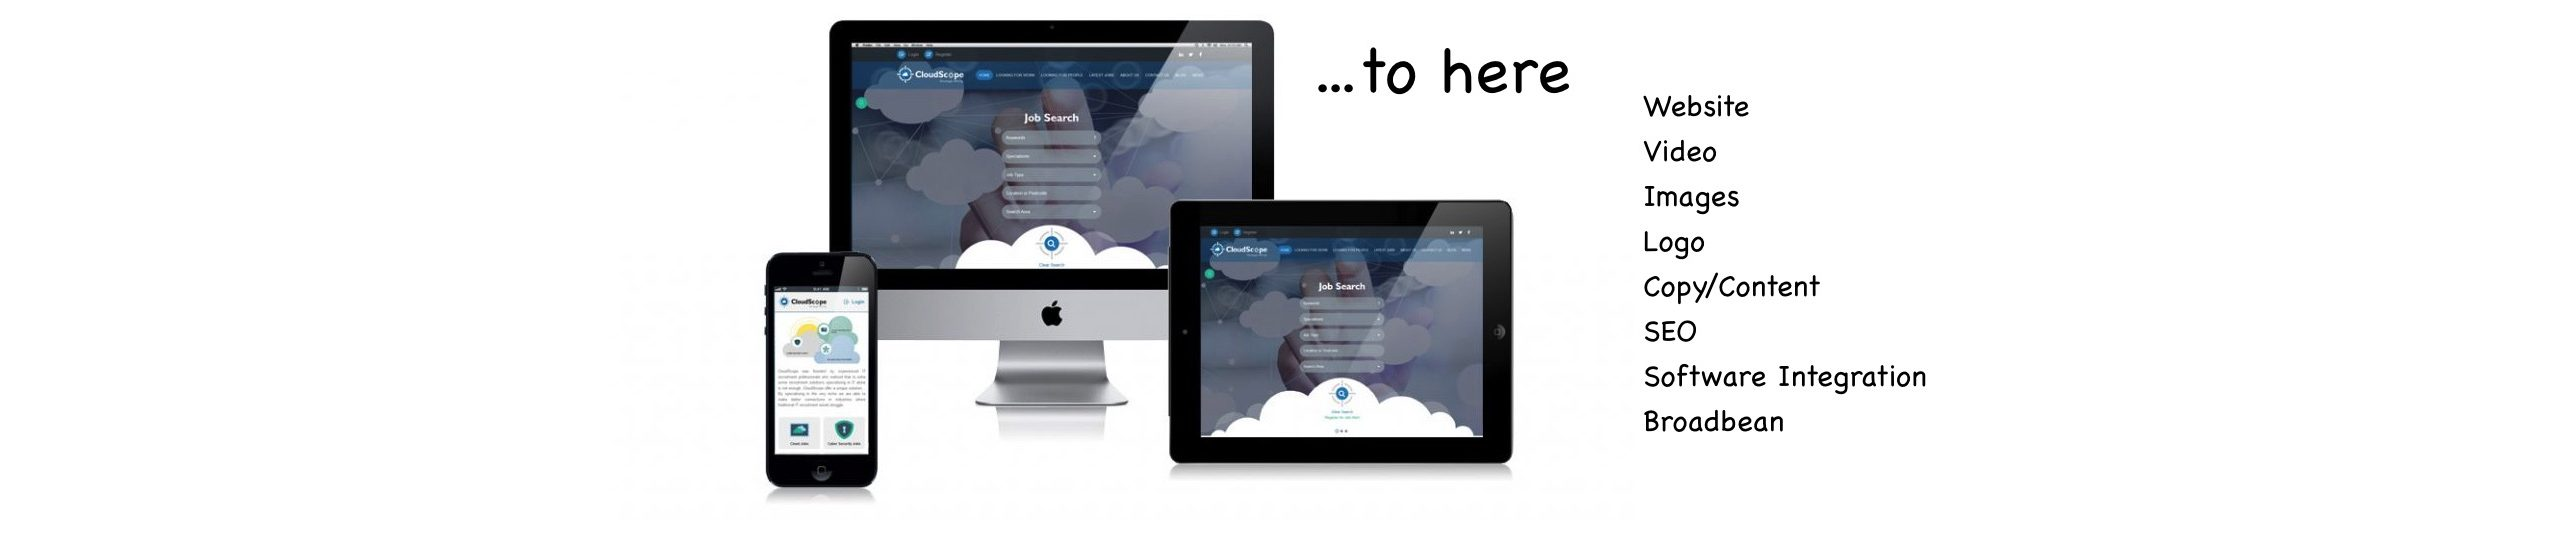 Recruitment website design for www.cloud-scope.co.uk using our R-WEB Recruiter+ platform and a Semi-Bespoke Design